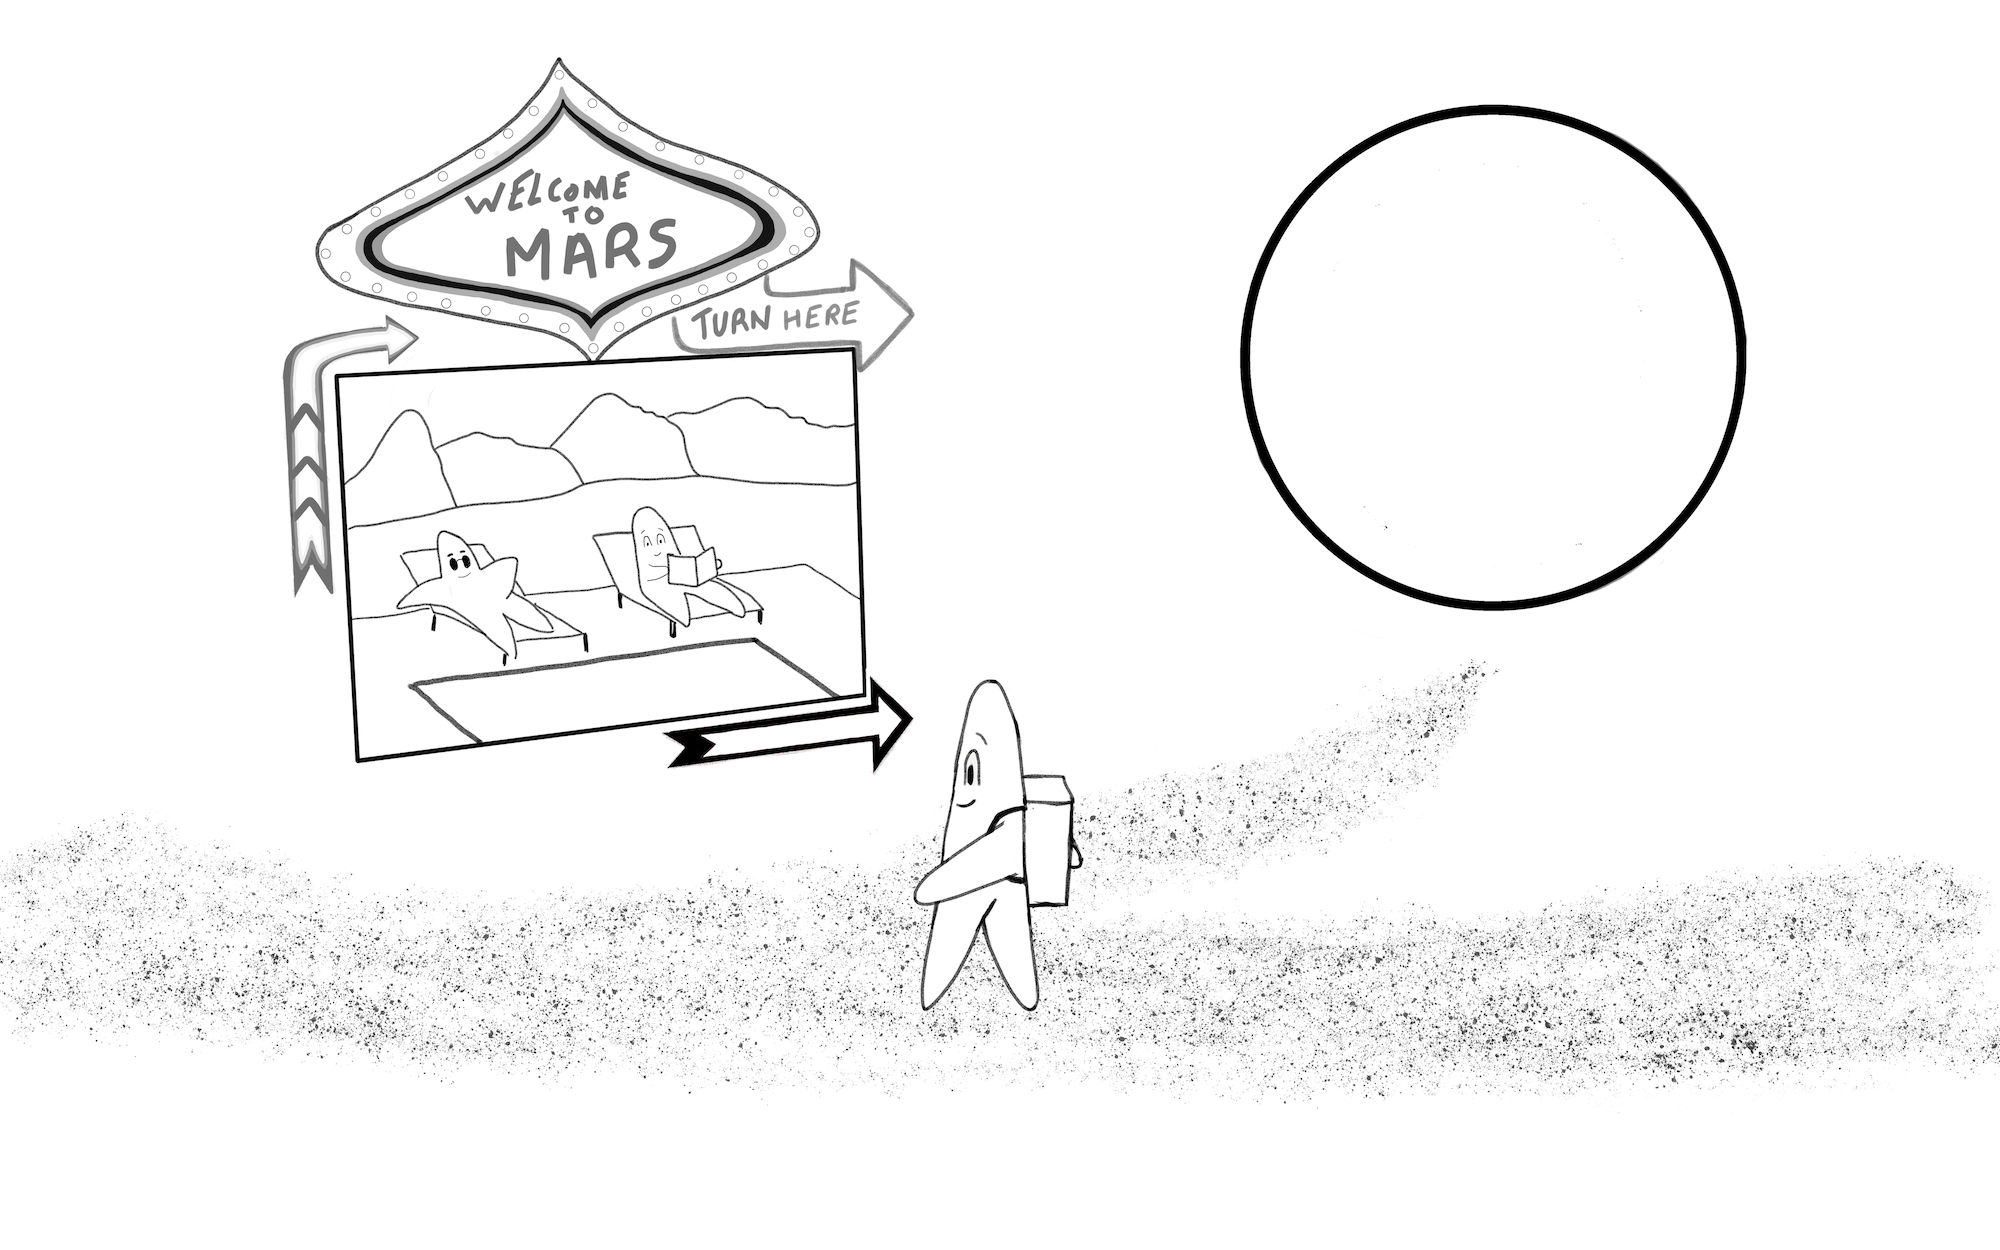 MARS TO COLOR_SMALL